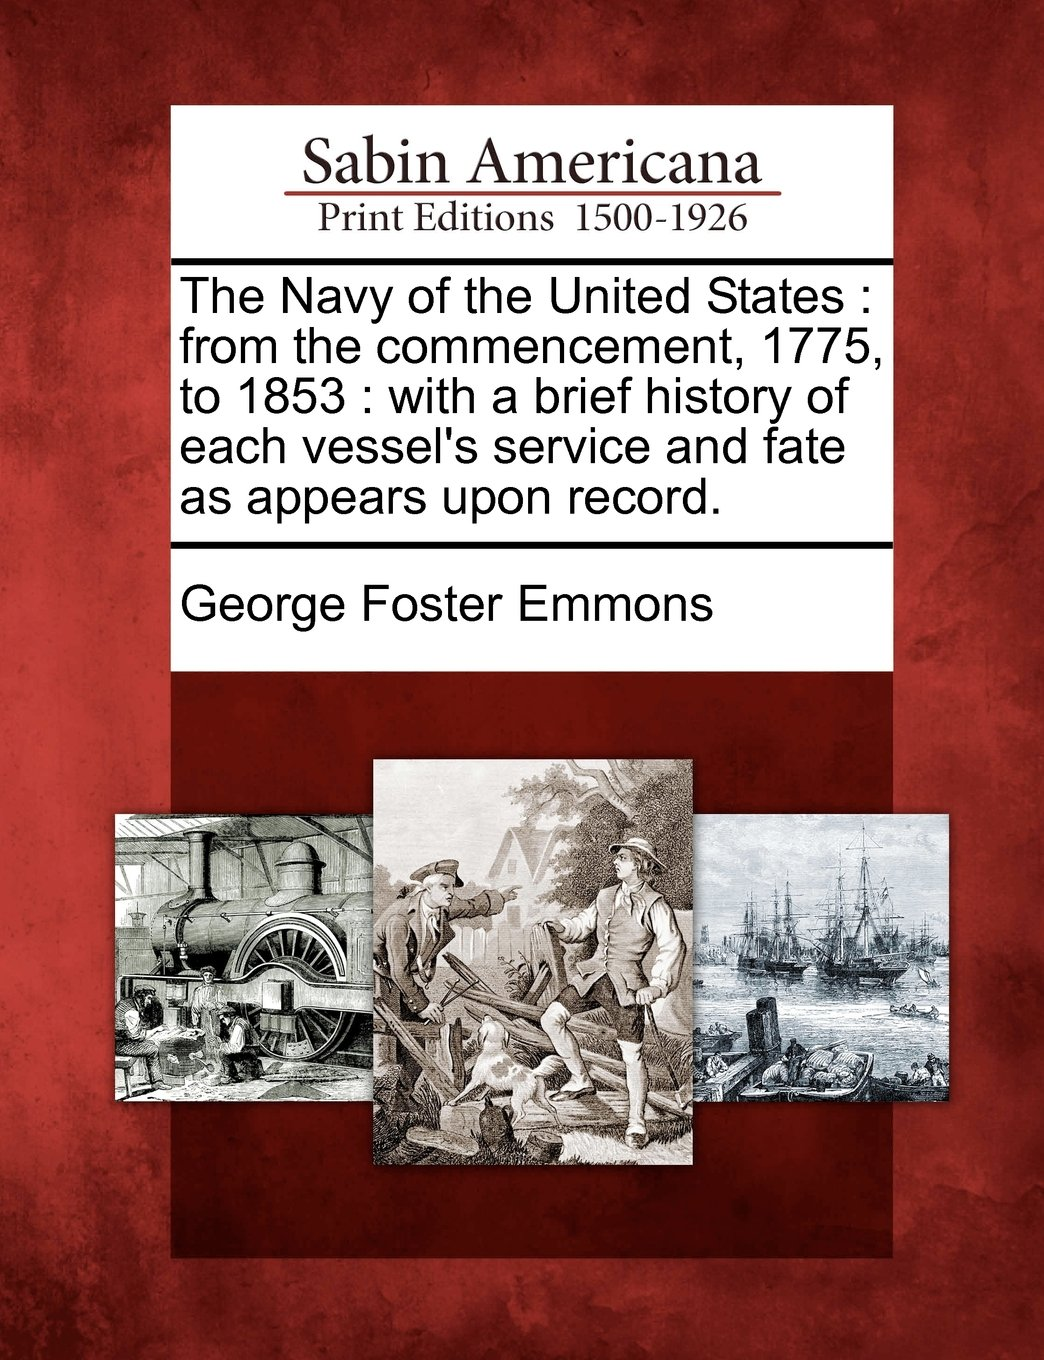 Read Online The Navy of the United States: from the commencement, 1775, to 1853 : with a brief history of each vessel's service and fate as appears upon record. PDF